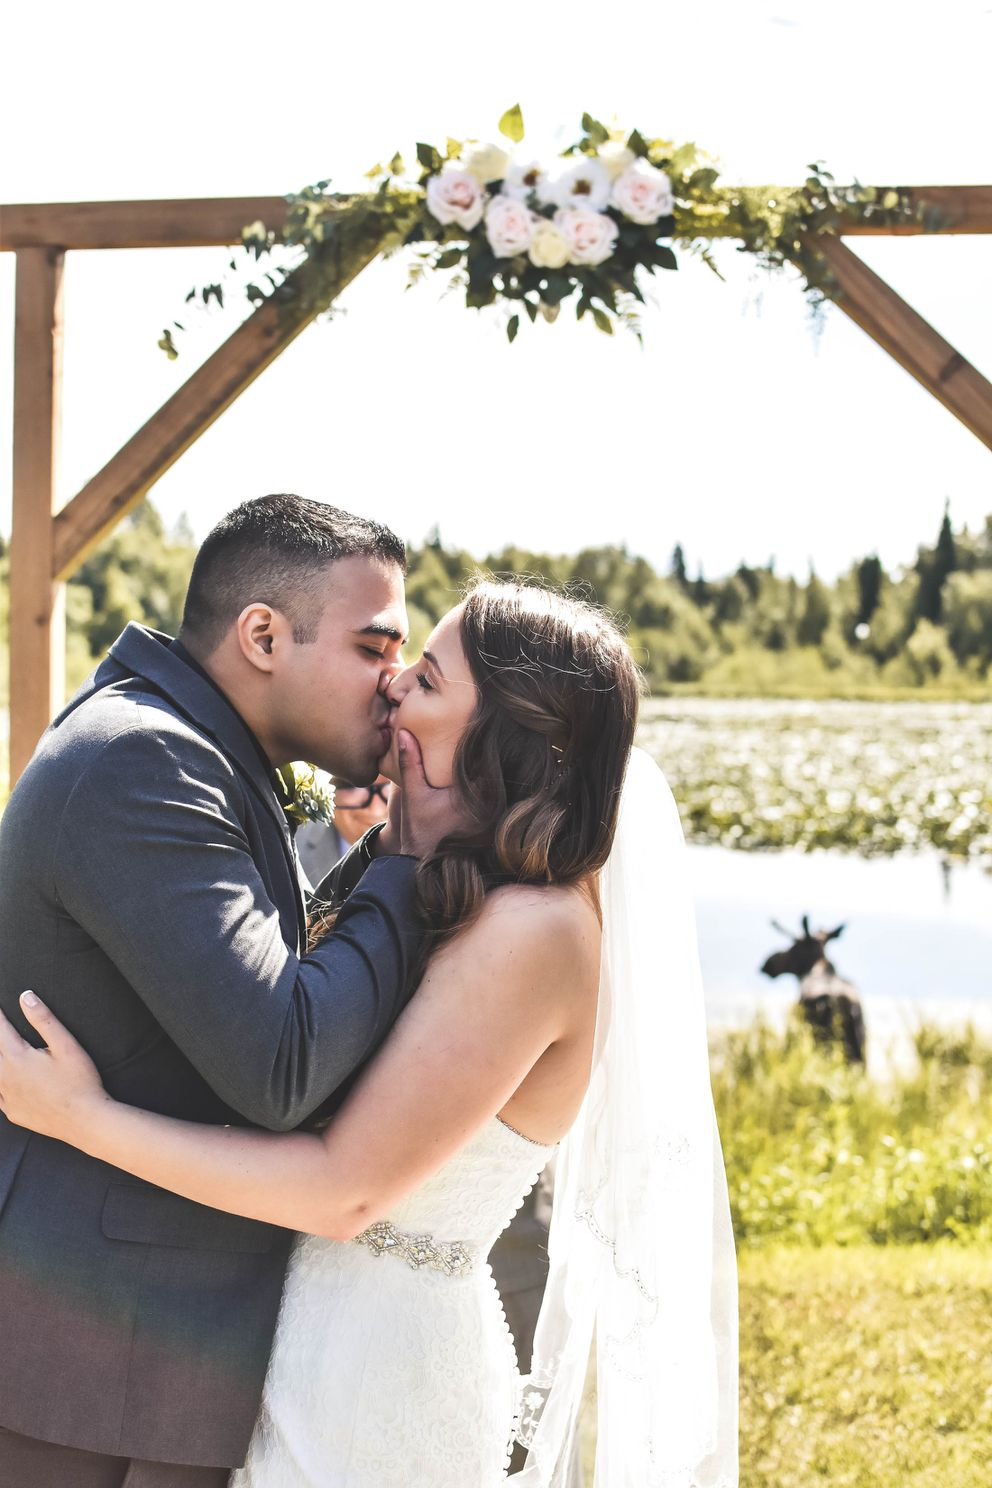 The moose that crashed Shandalyn and Alan Cuellar's wedding ended up hanging out by a pond for most of the reception. (Photo courtesy of Bria Celest)